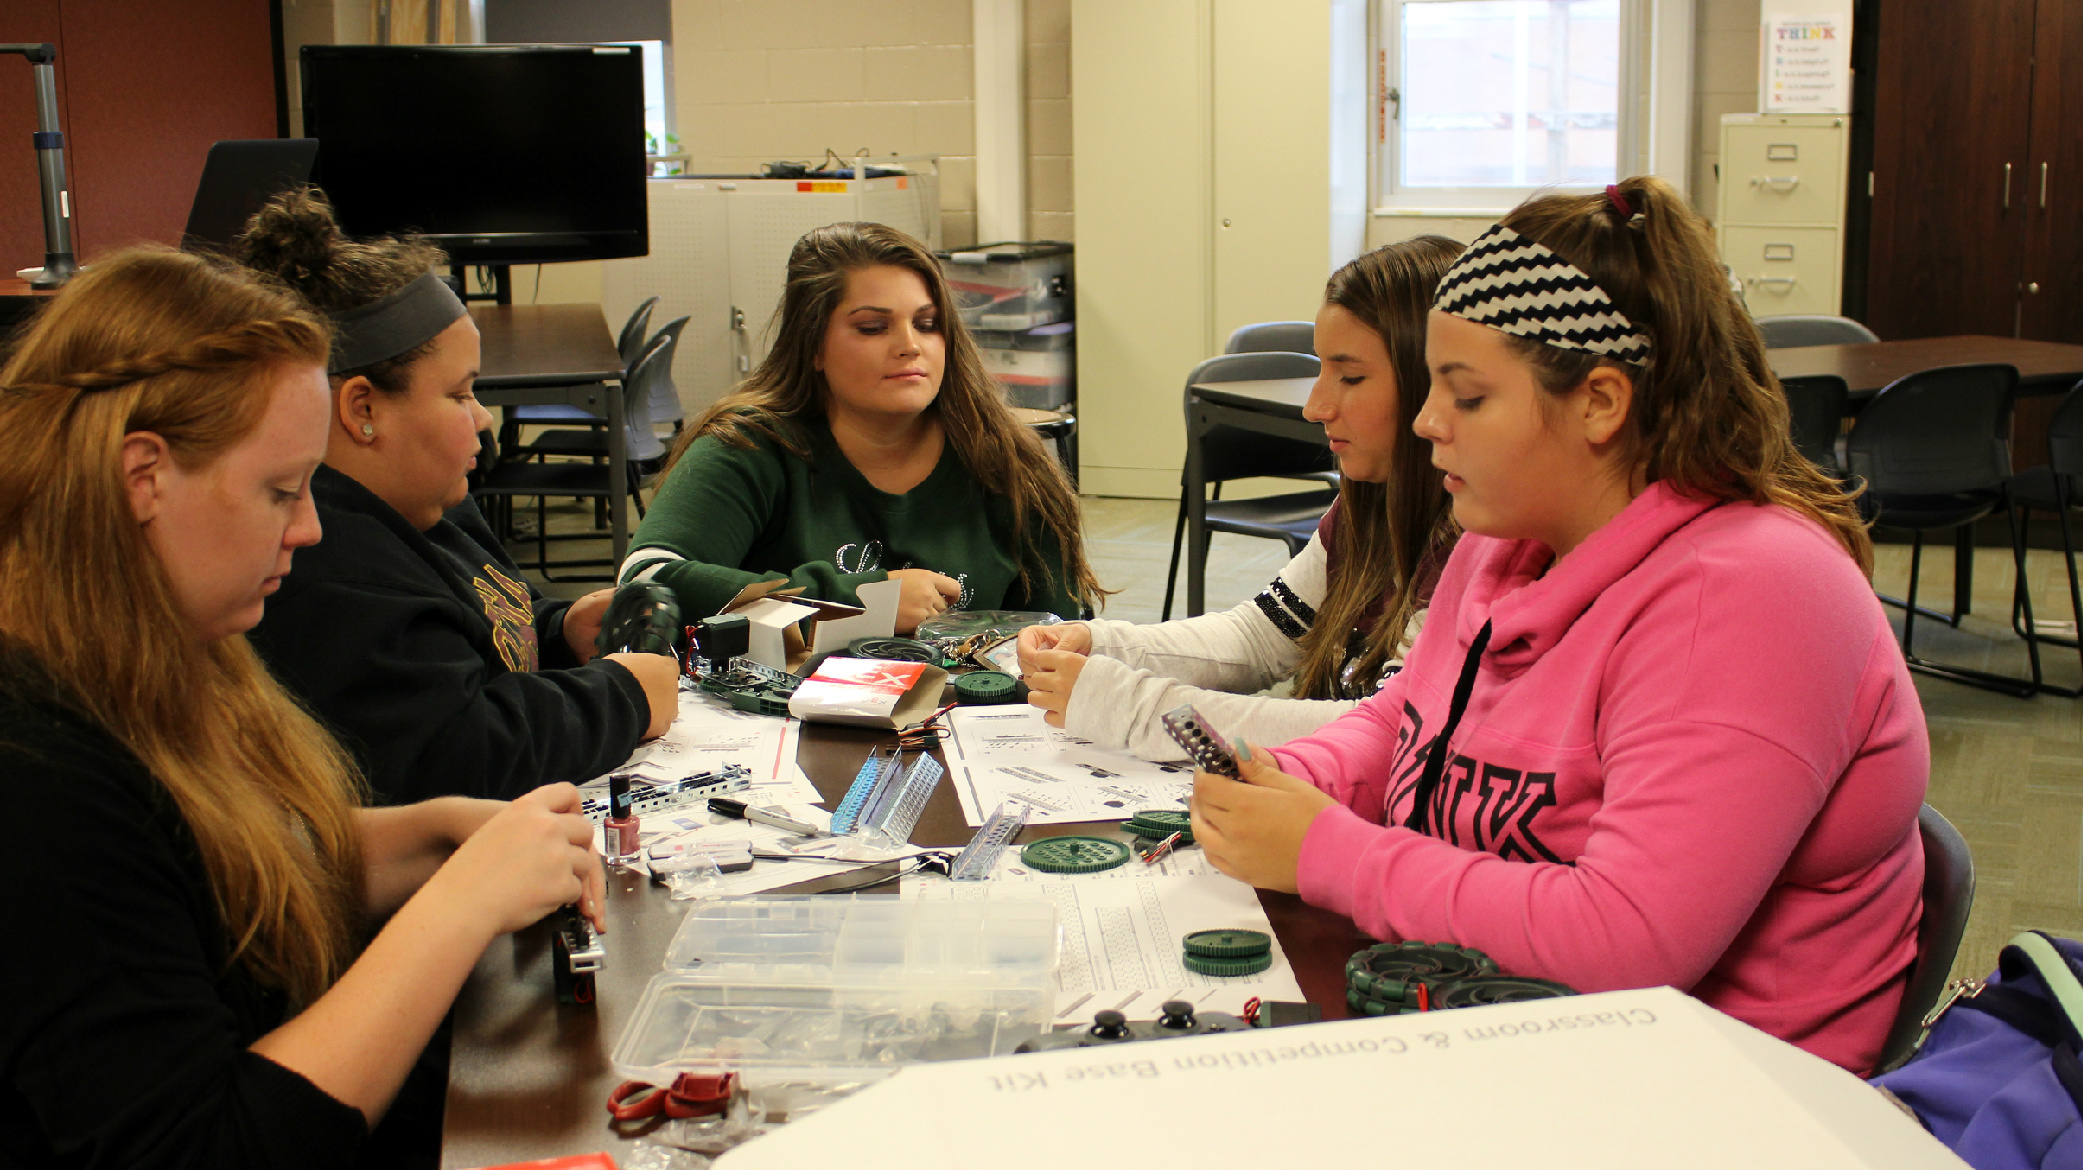 Girls VEX Robotics at Laker High School